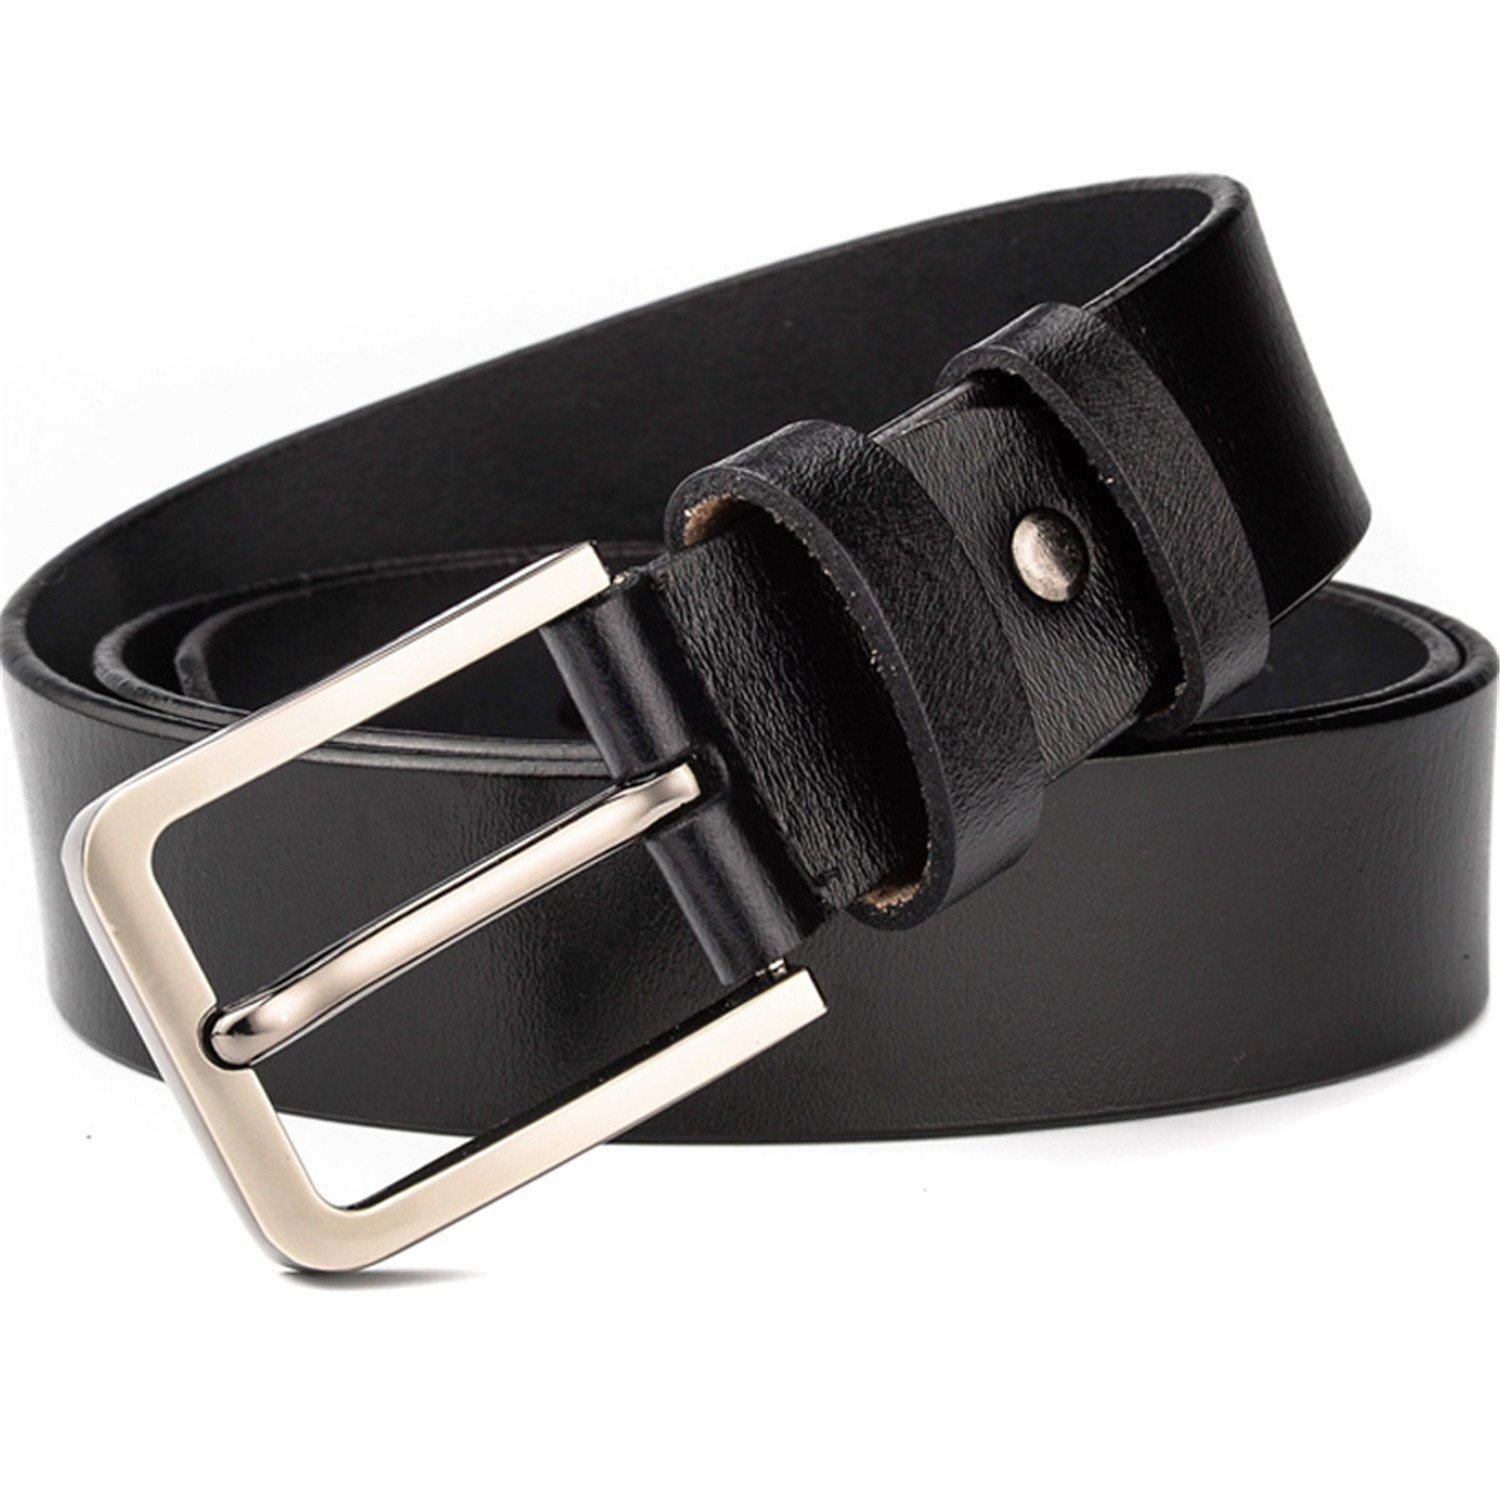 HuoGuo Belts Men 140CM 150CM 160CM NEWNew Fashion Business Casual Male Belt Strong Men Best Popular Selling Goods Cool Choice Hot Sale Black Asia size 150CM